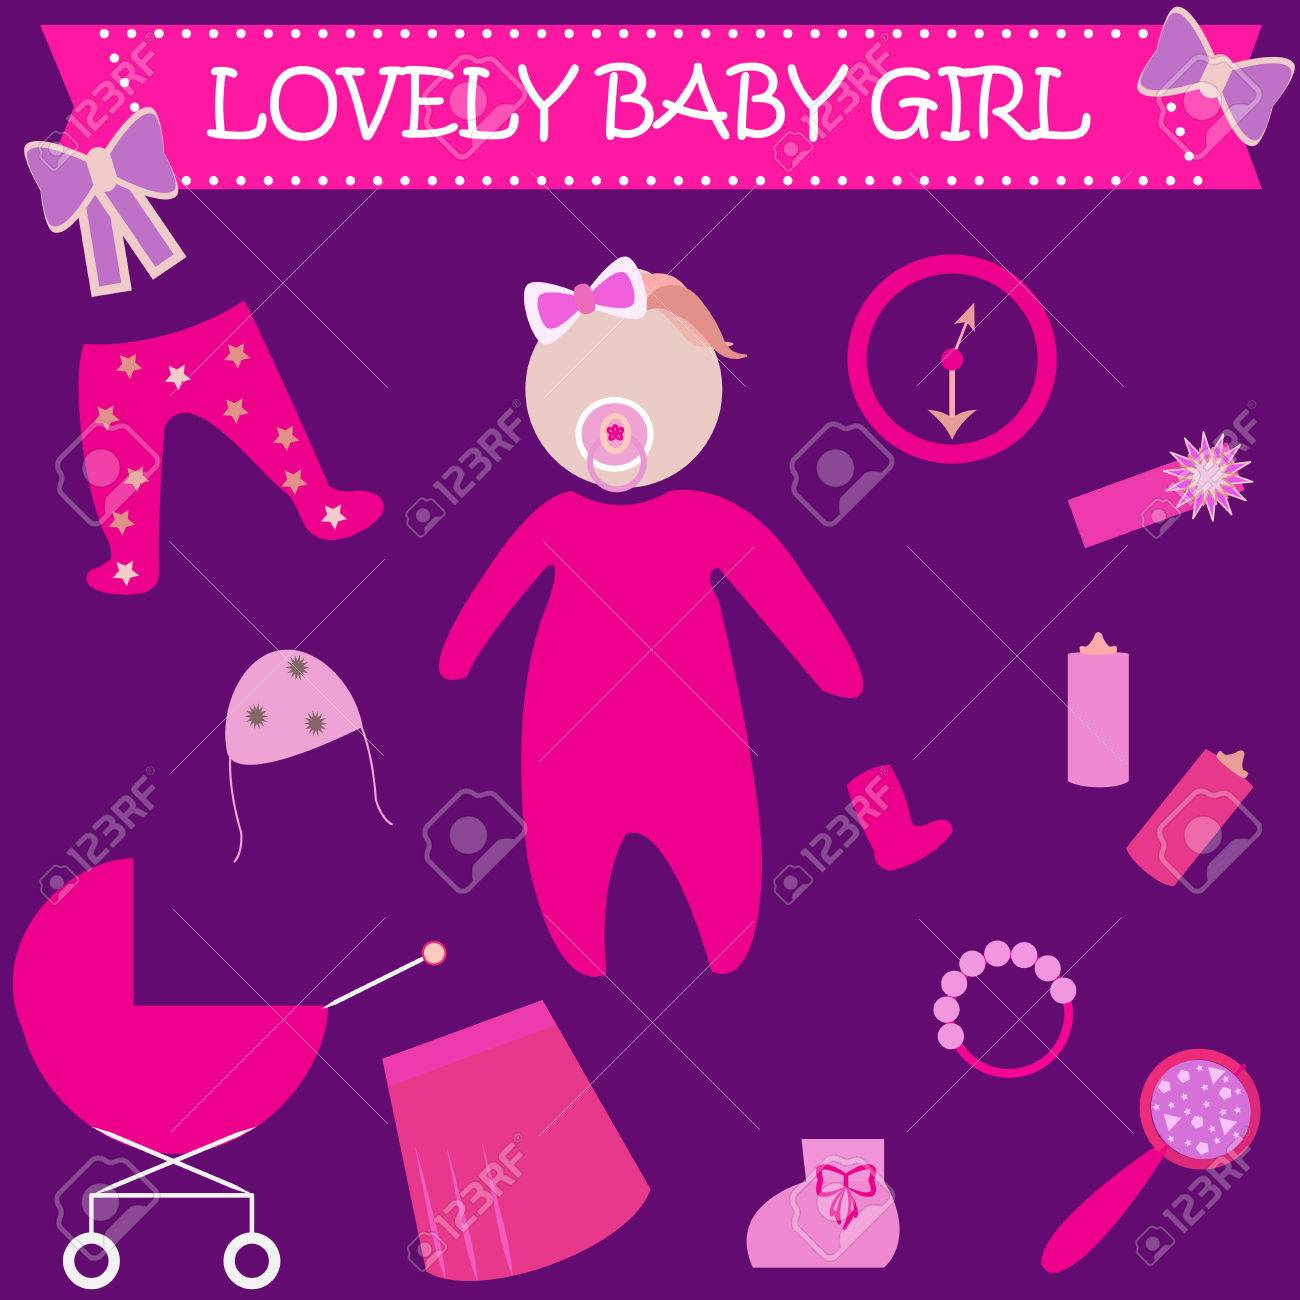 Cute Graphic For Baby Girl Baby Girl Newborn Lovely Greeting